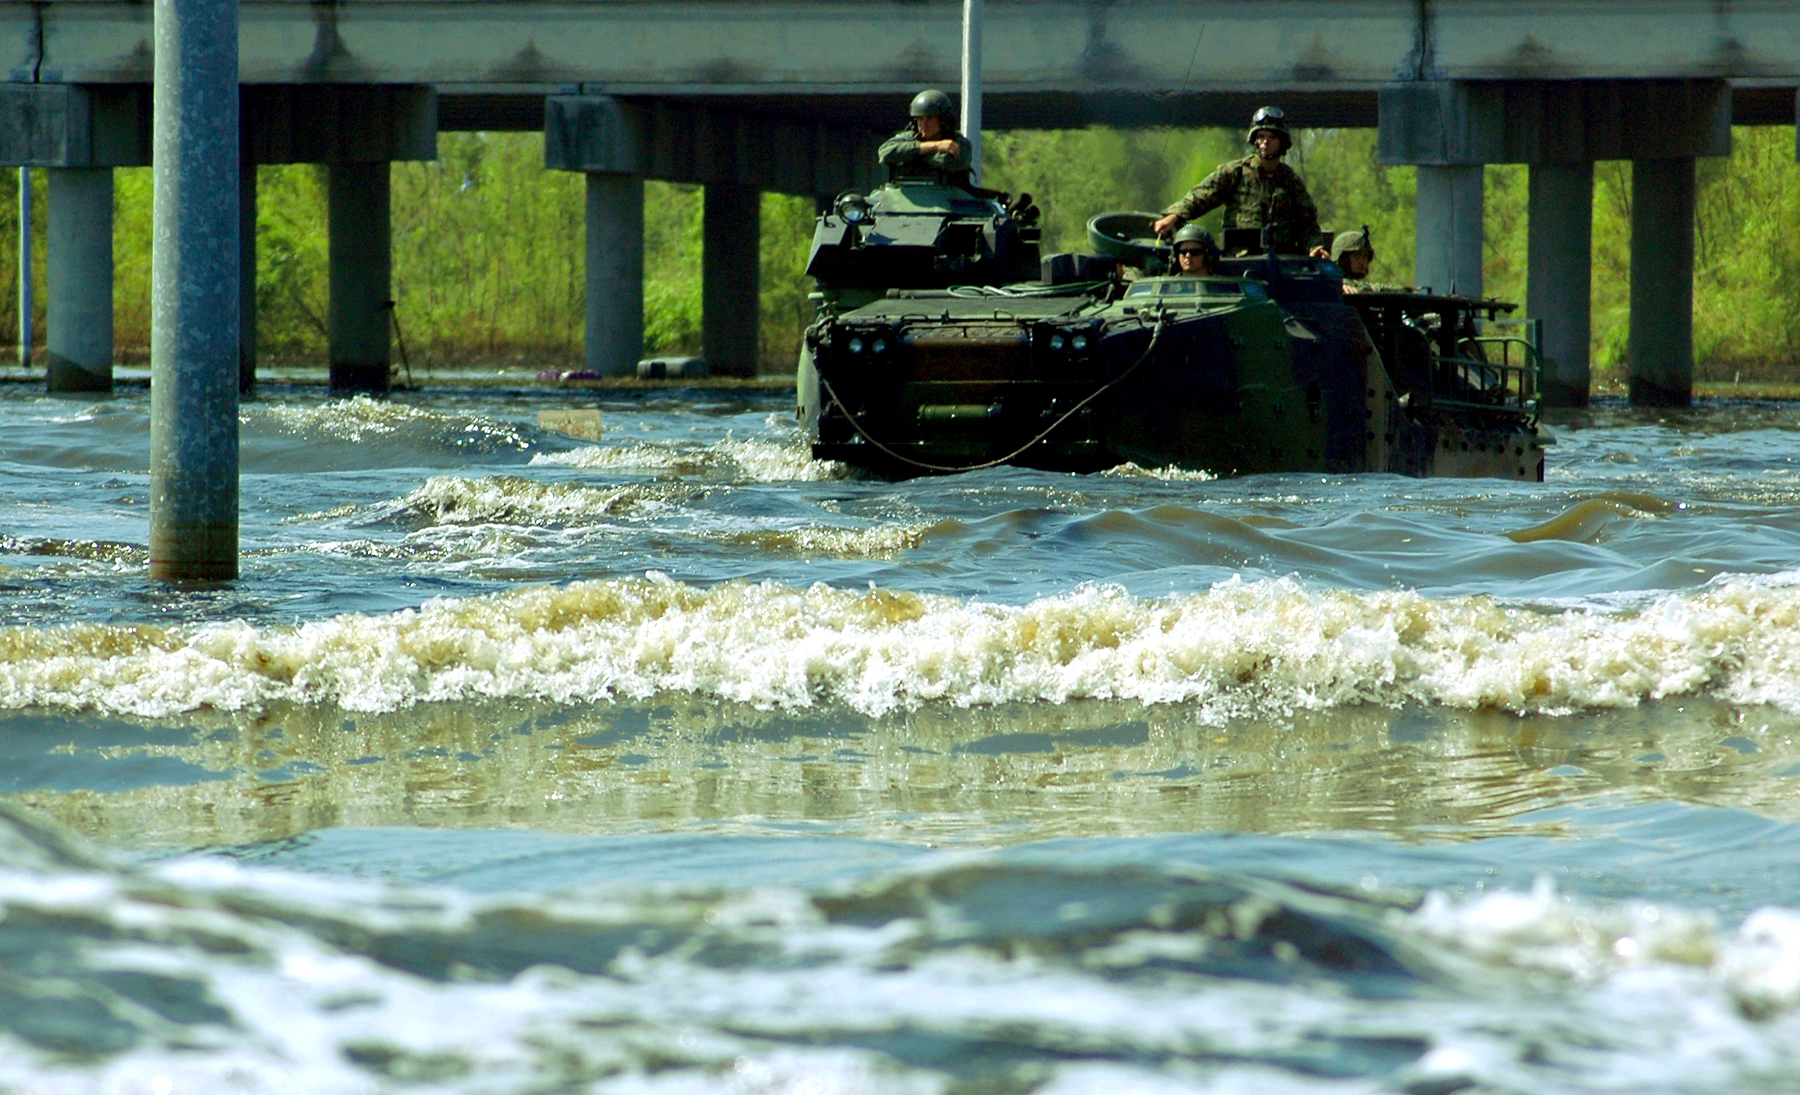 Marines aboard an Assault Amphibian Vehicle venture through waves and polluted water through the devastated neighborhoods around New Orleans looking for survivors of Hurricane Katrina. US Marine Corps Photo